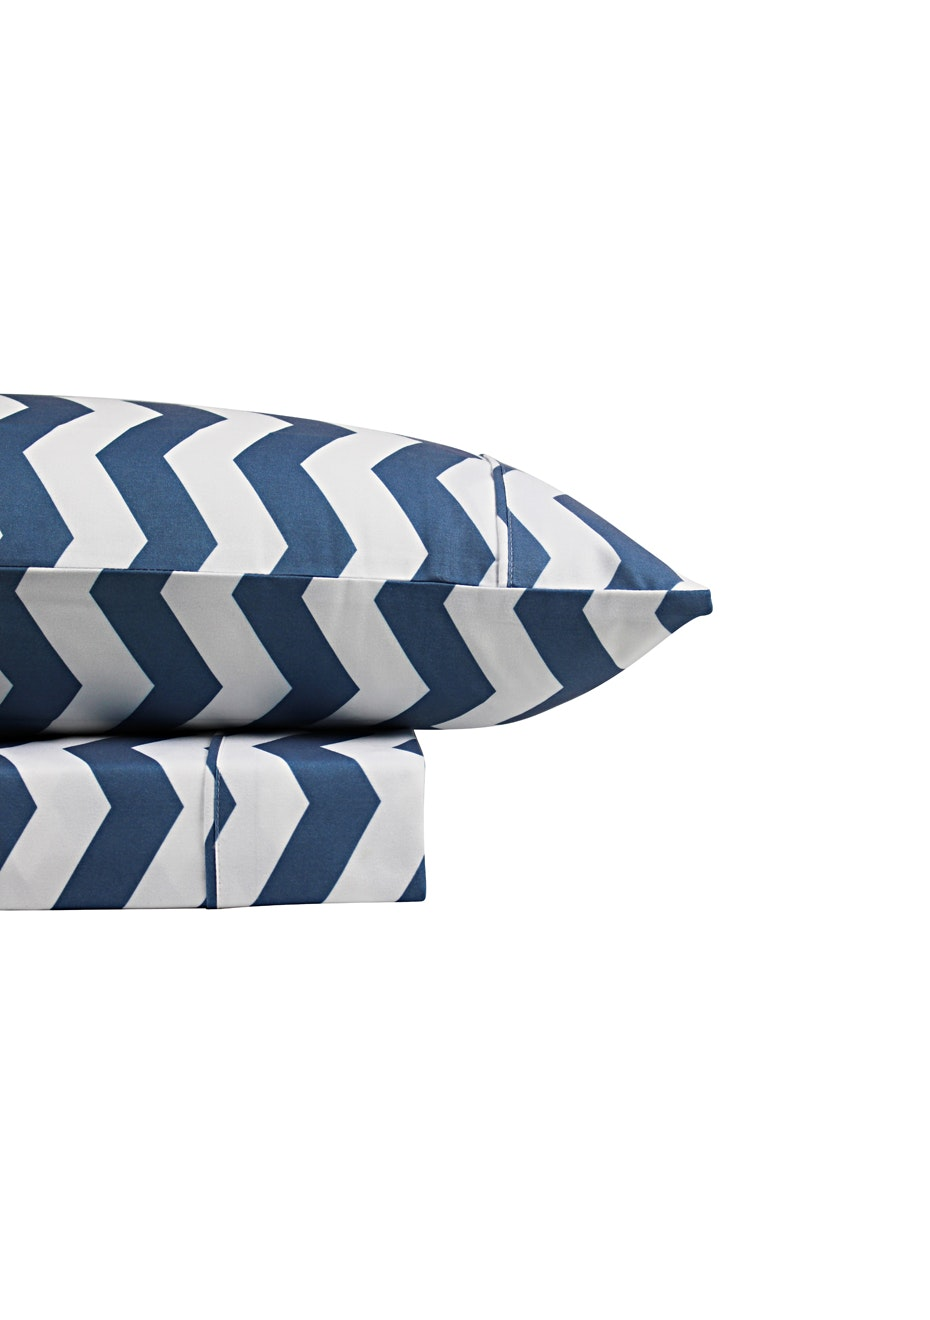 Thermal Flannel Sheet Sets - Chevron Design - Bay Blue - Double Bed